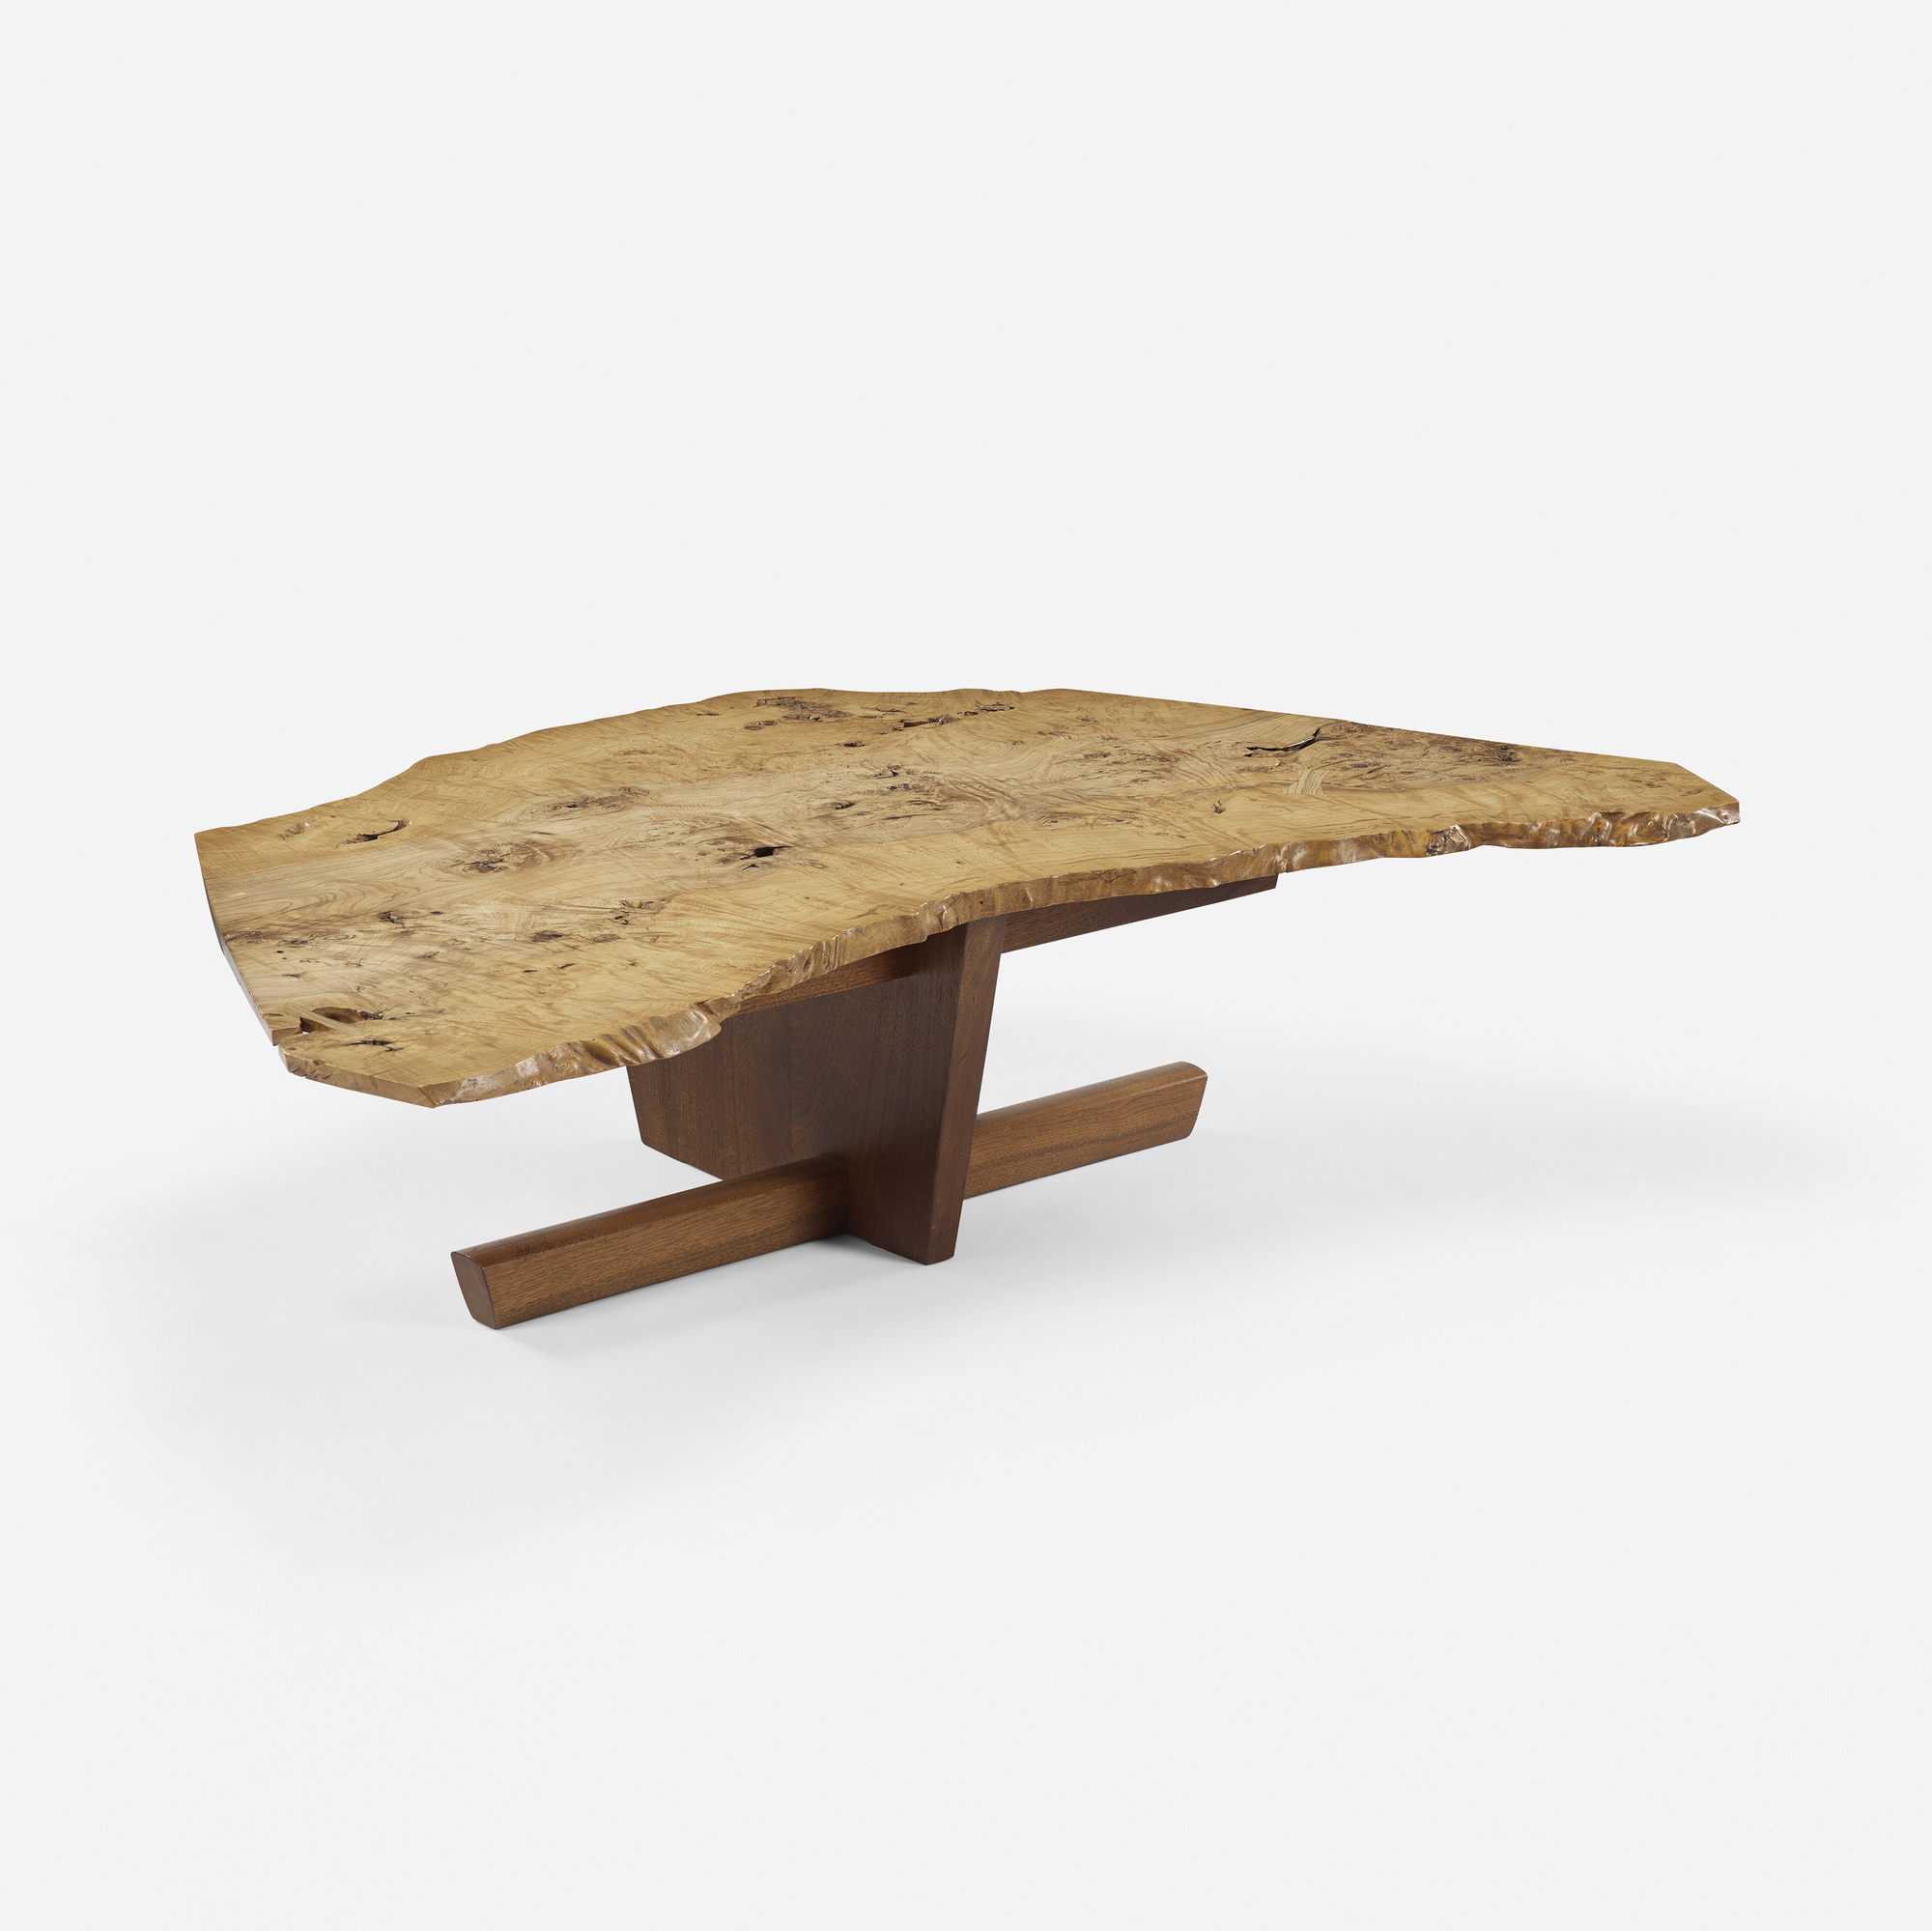 159 GEORGE NAKASHIMA Minguren I coffee table Design 11 June